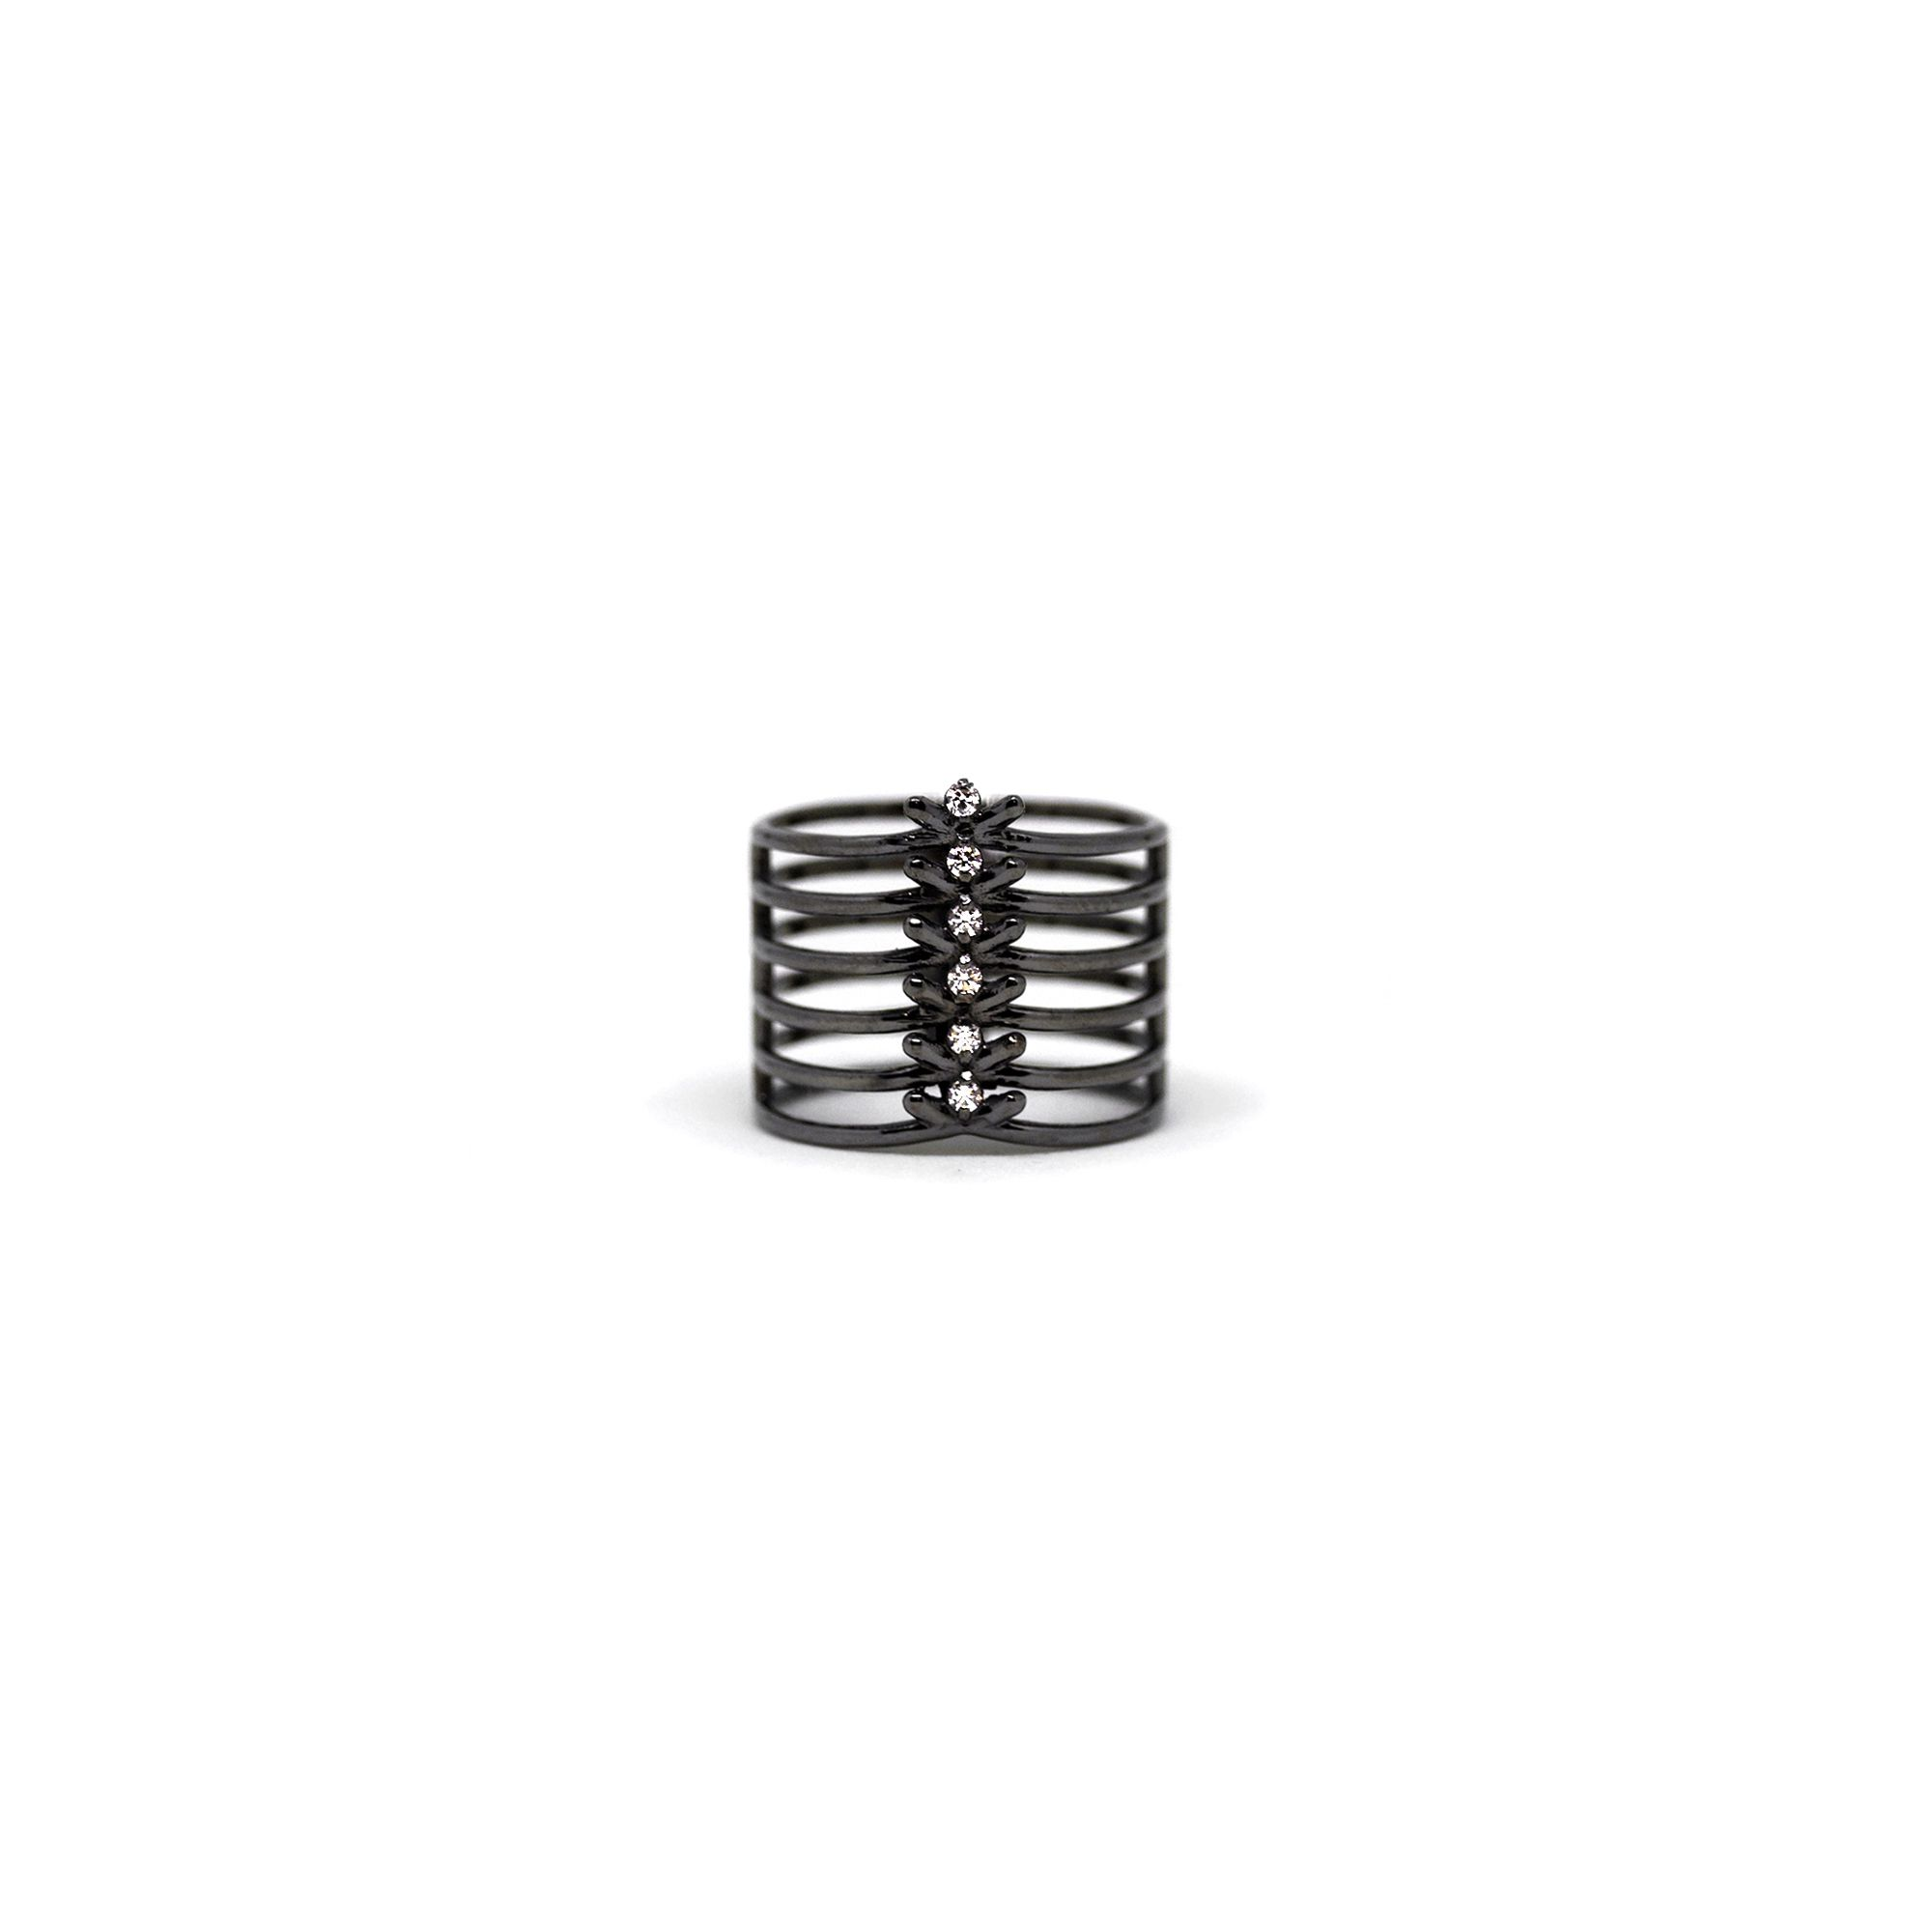 6 element 'Spinae' ring Ring in black silver